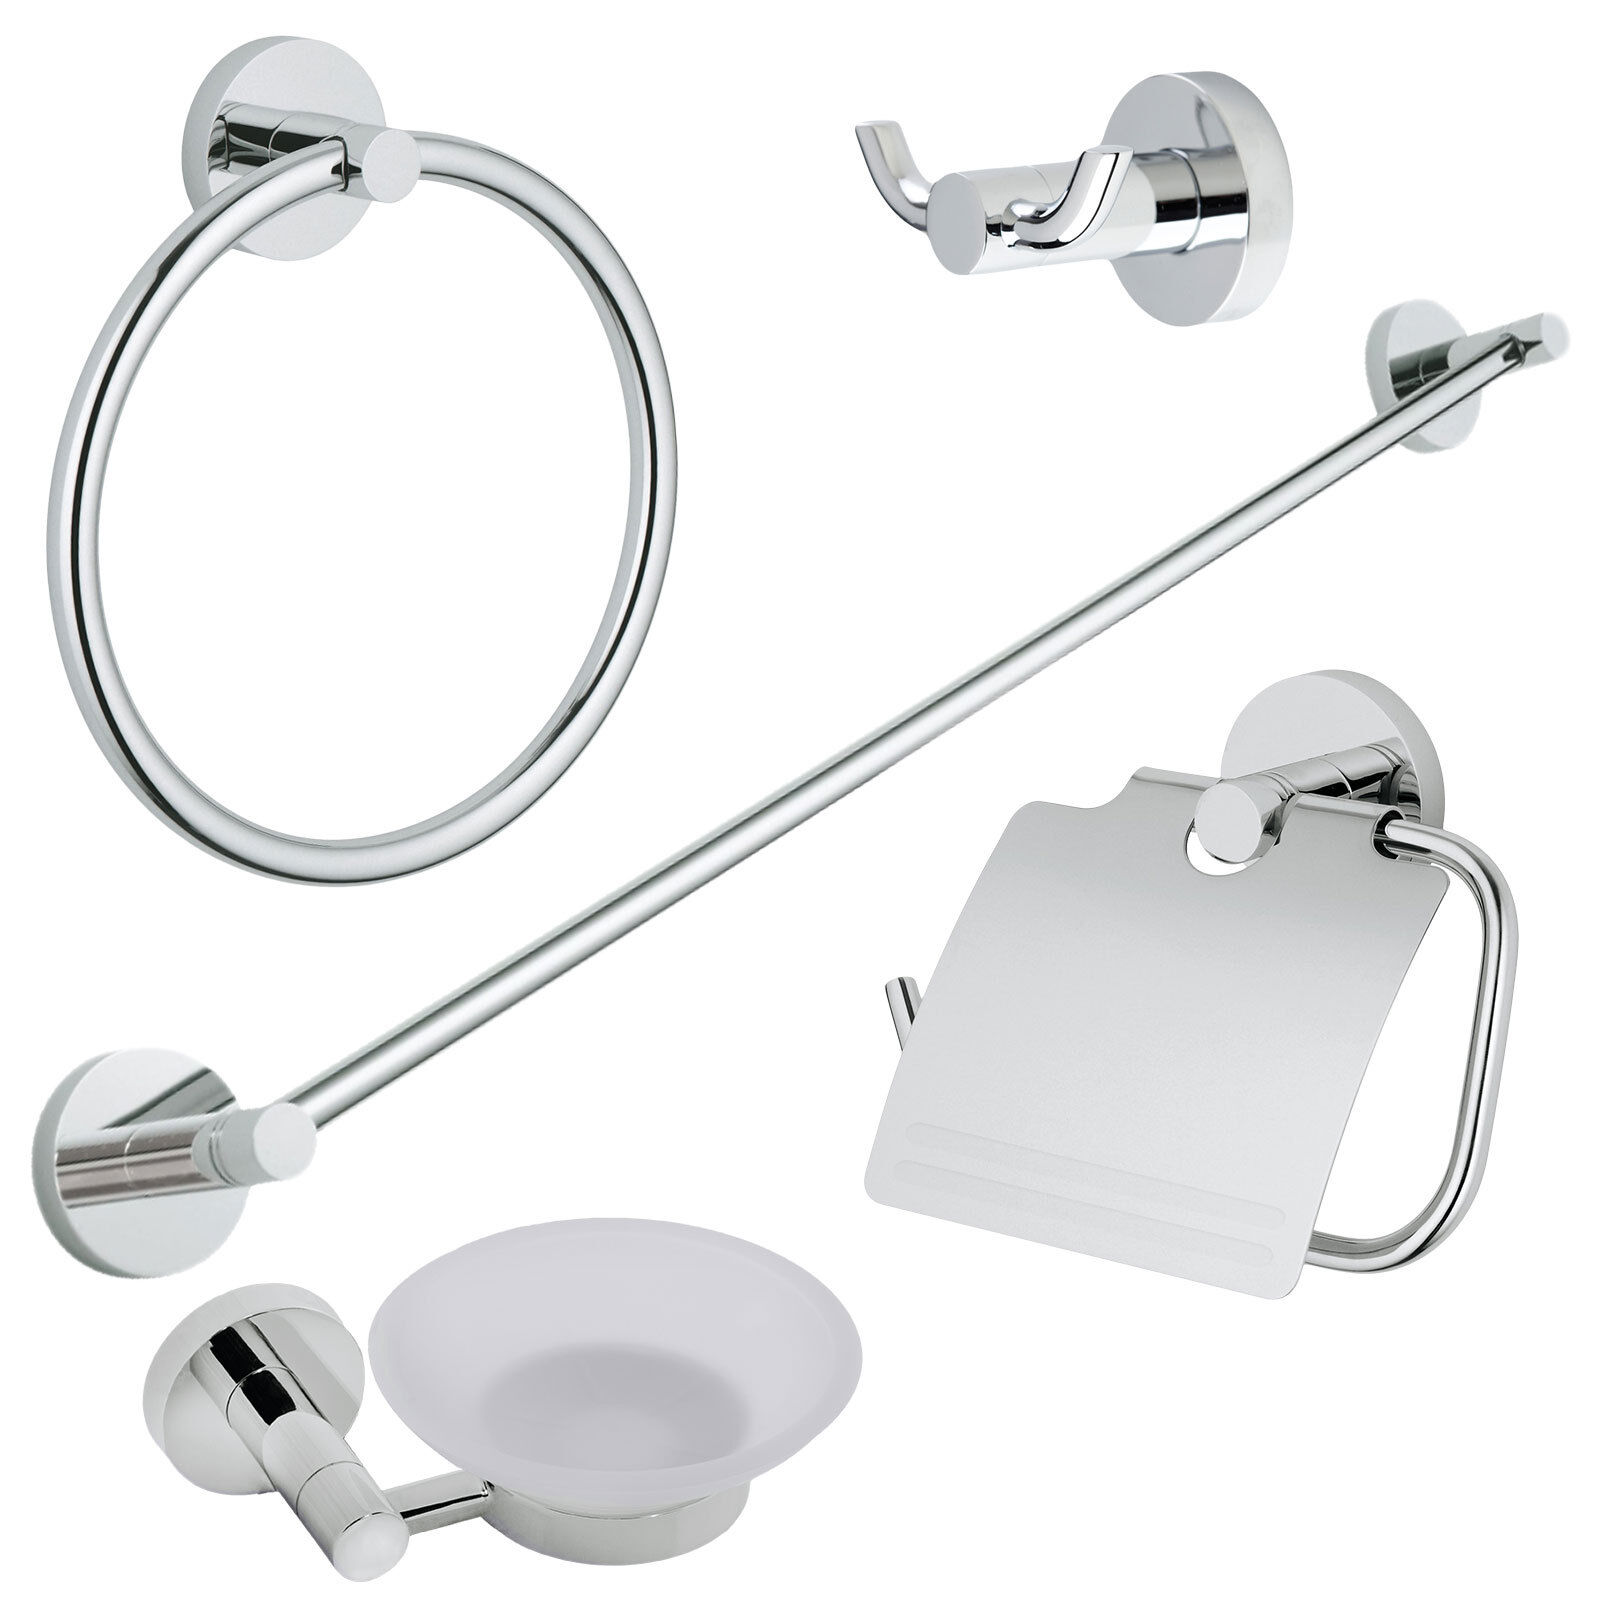 Chrome Modern 5 Pc. Bath Accessories Towel Bar Ring Toilet